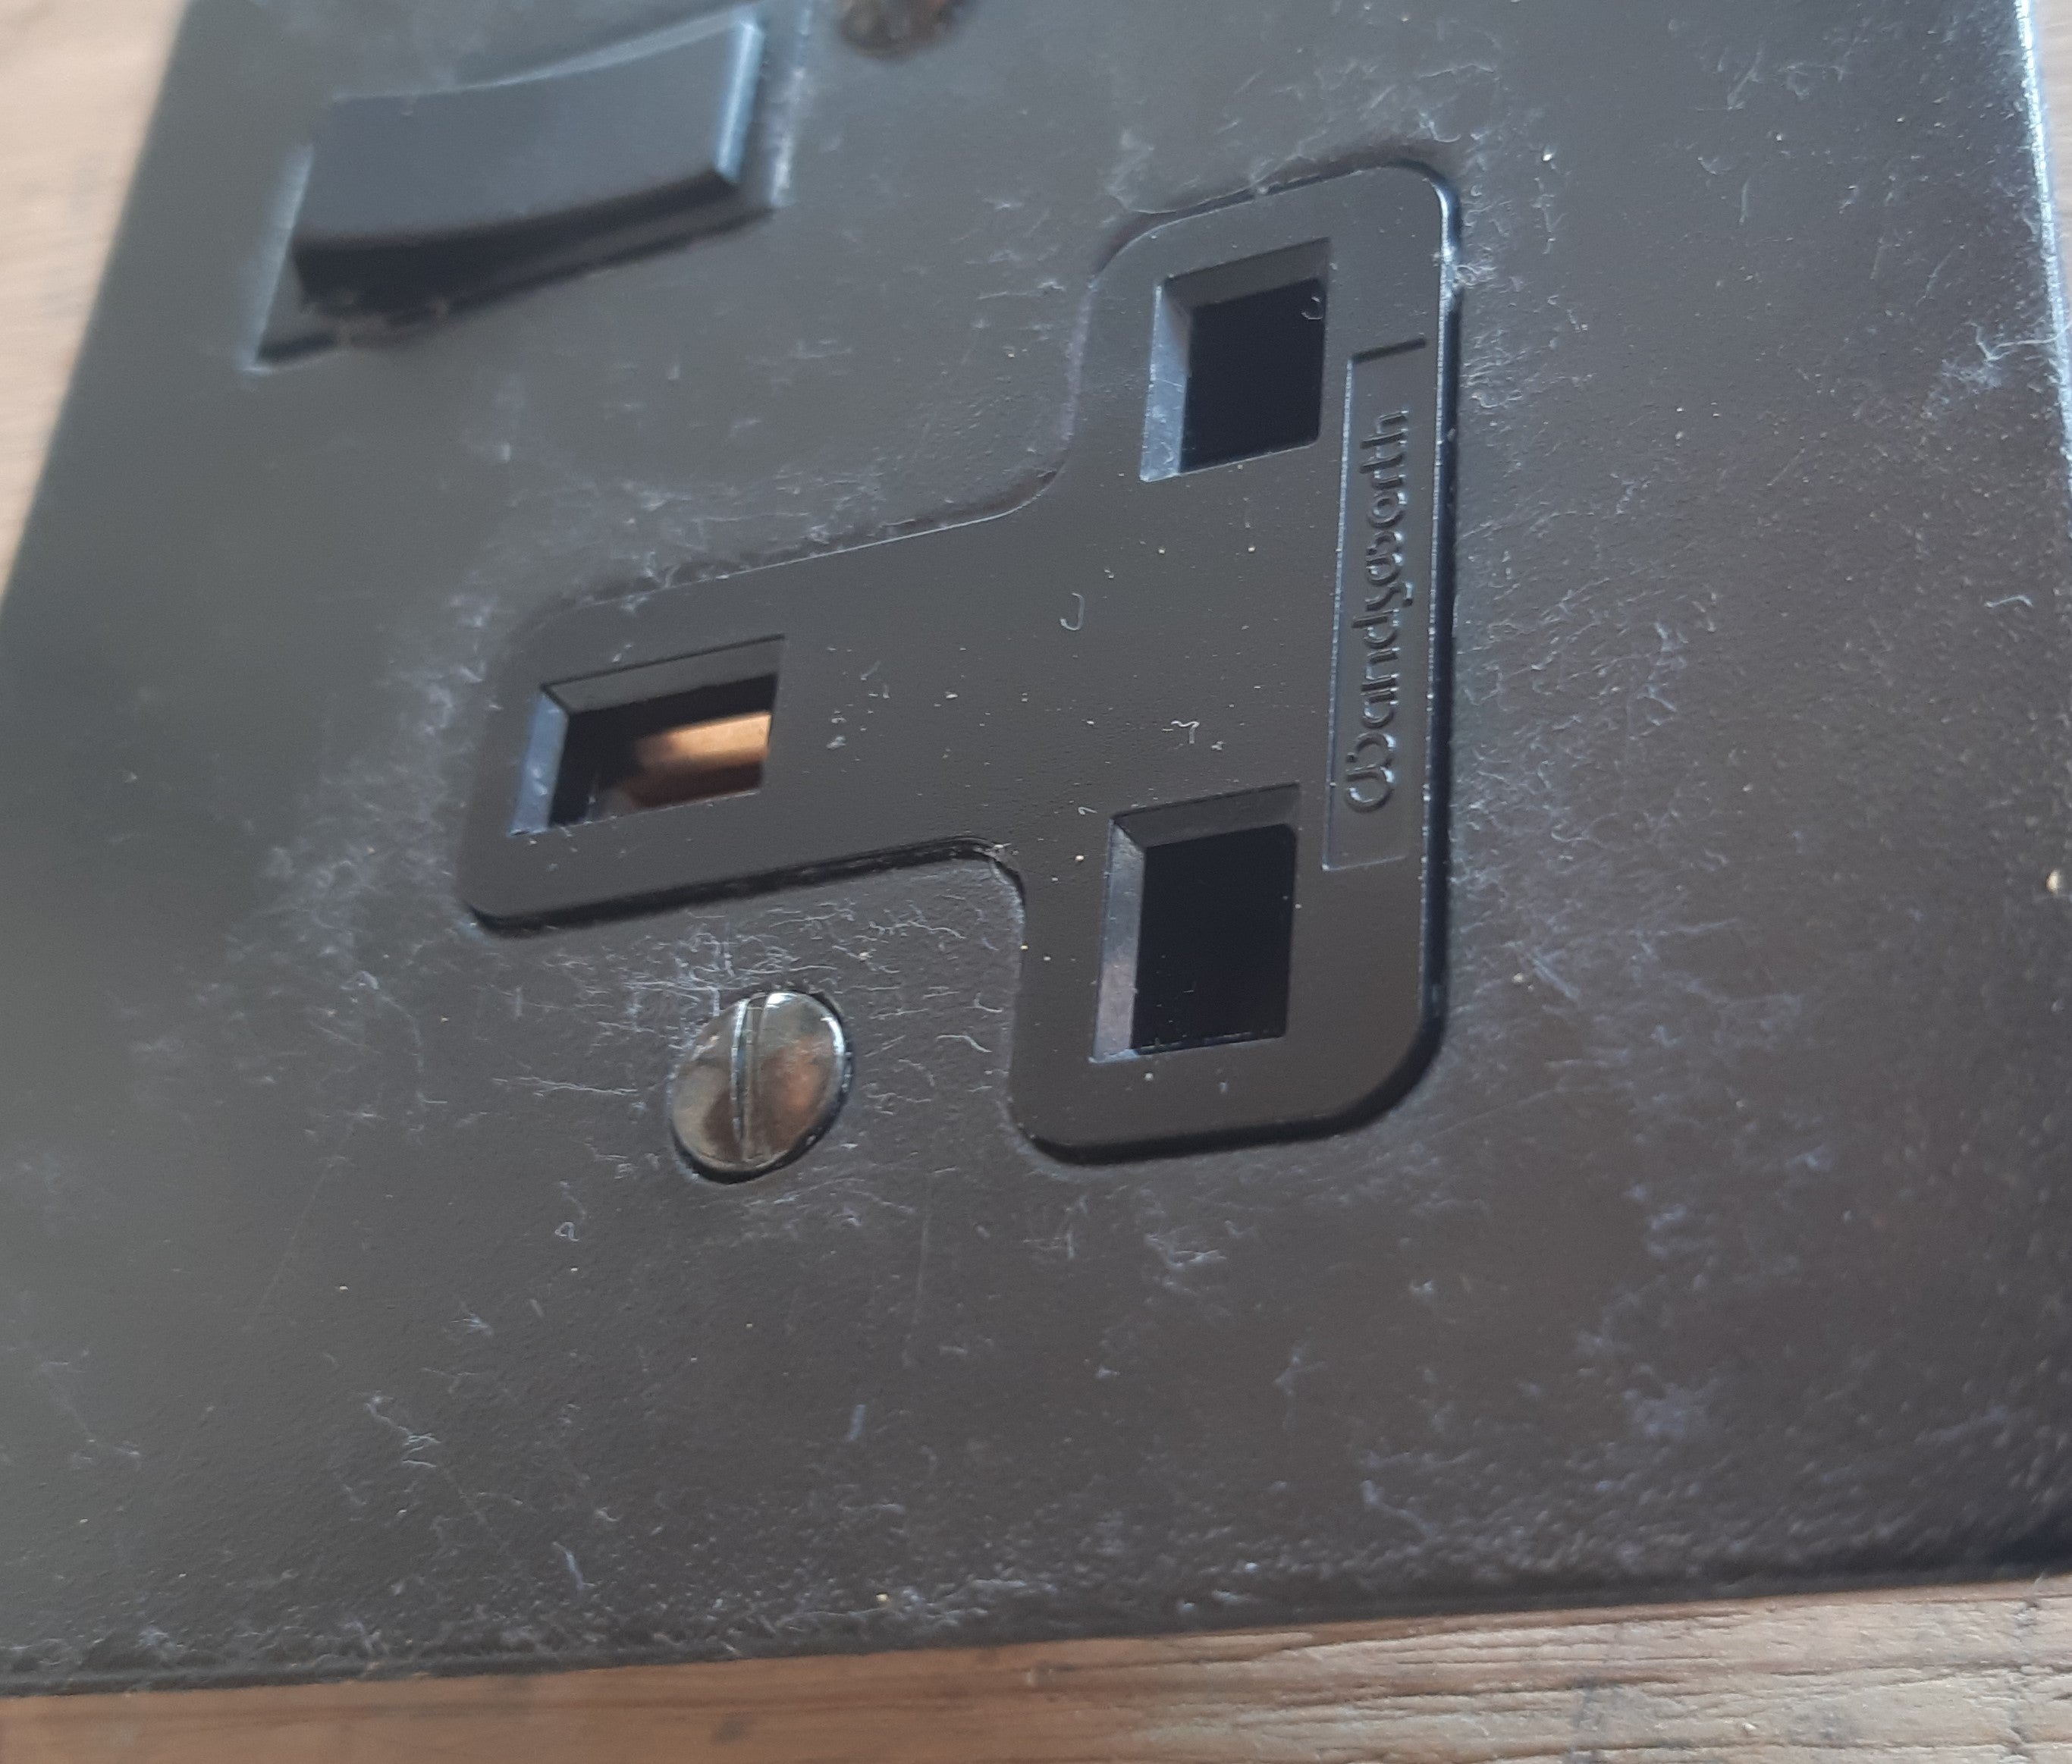 Fused Switch Connector with Outlet